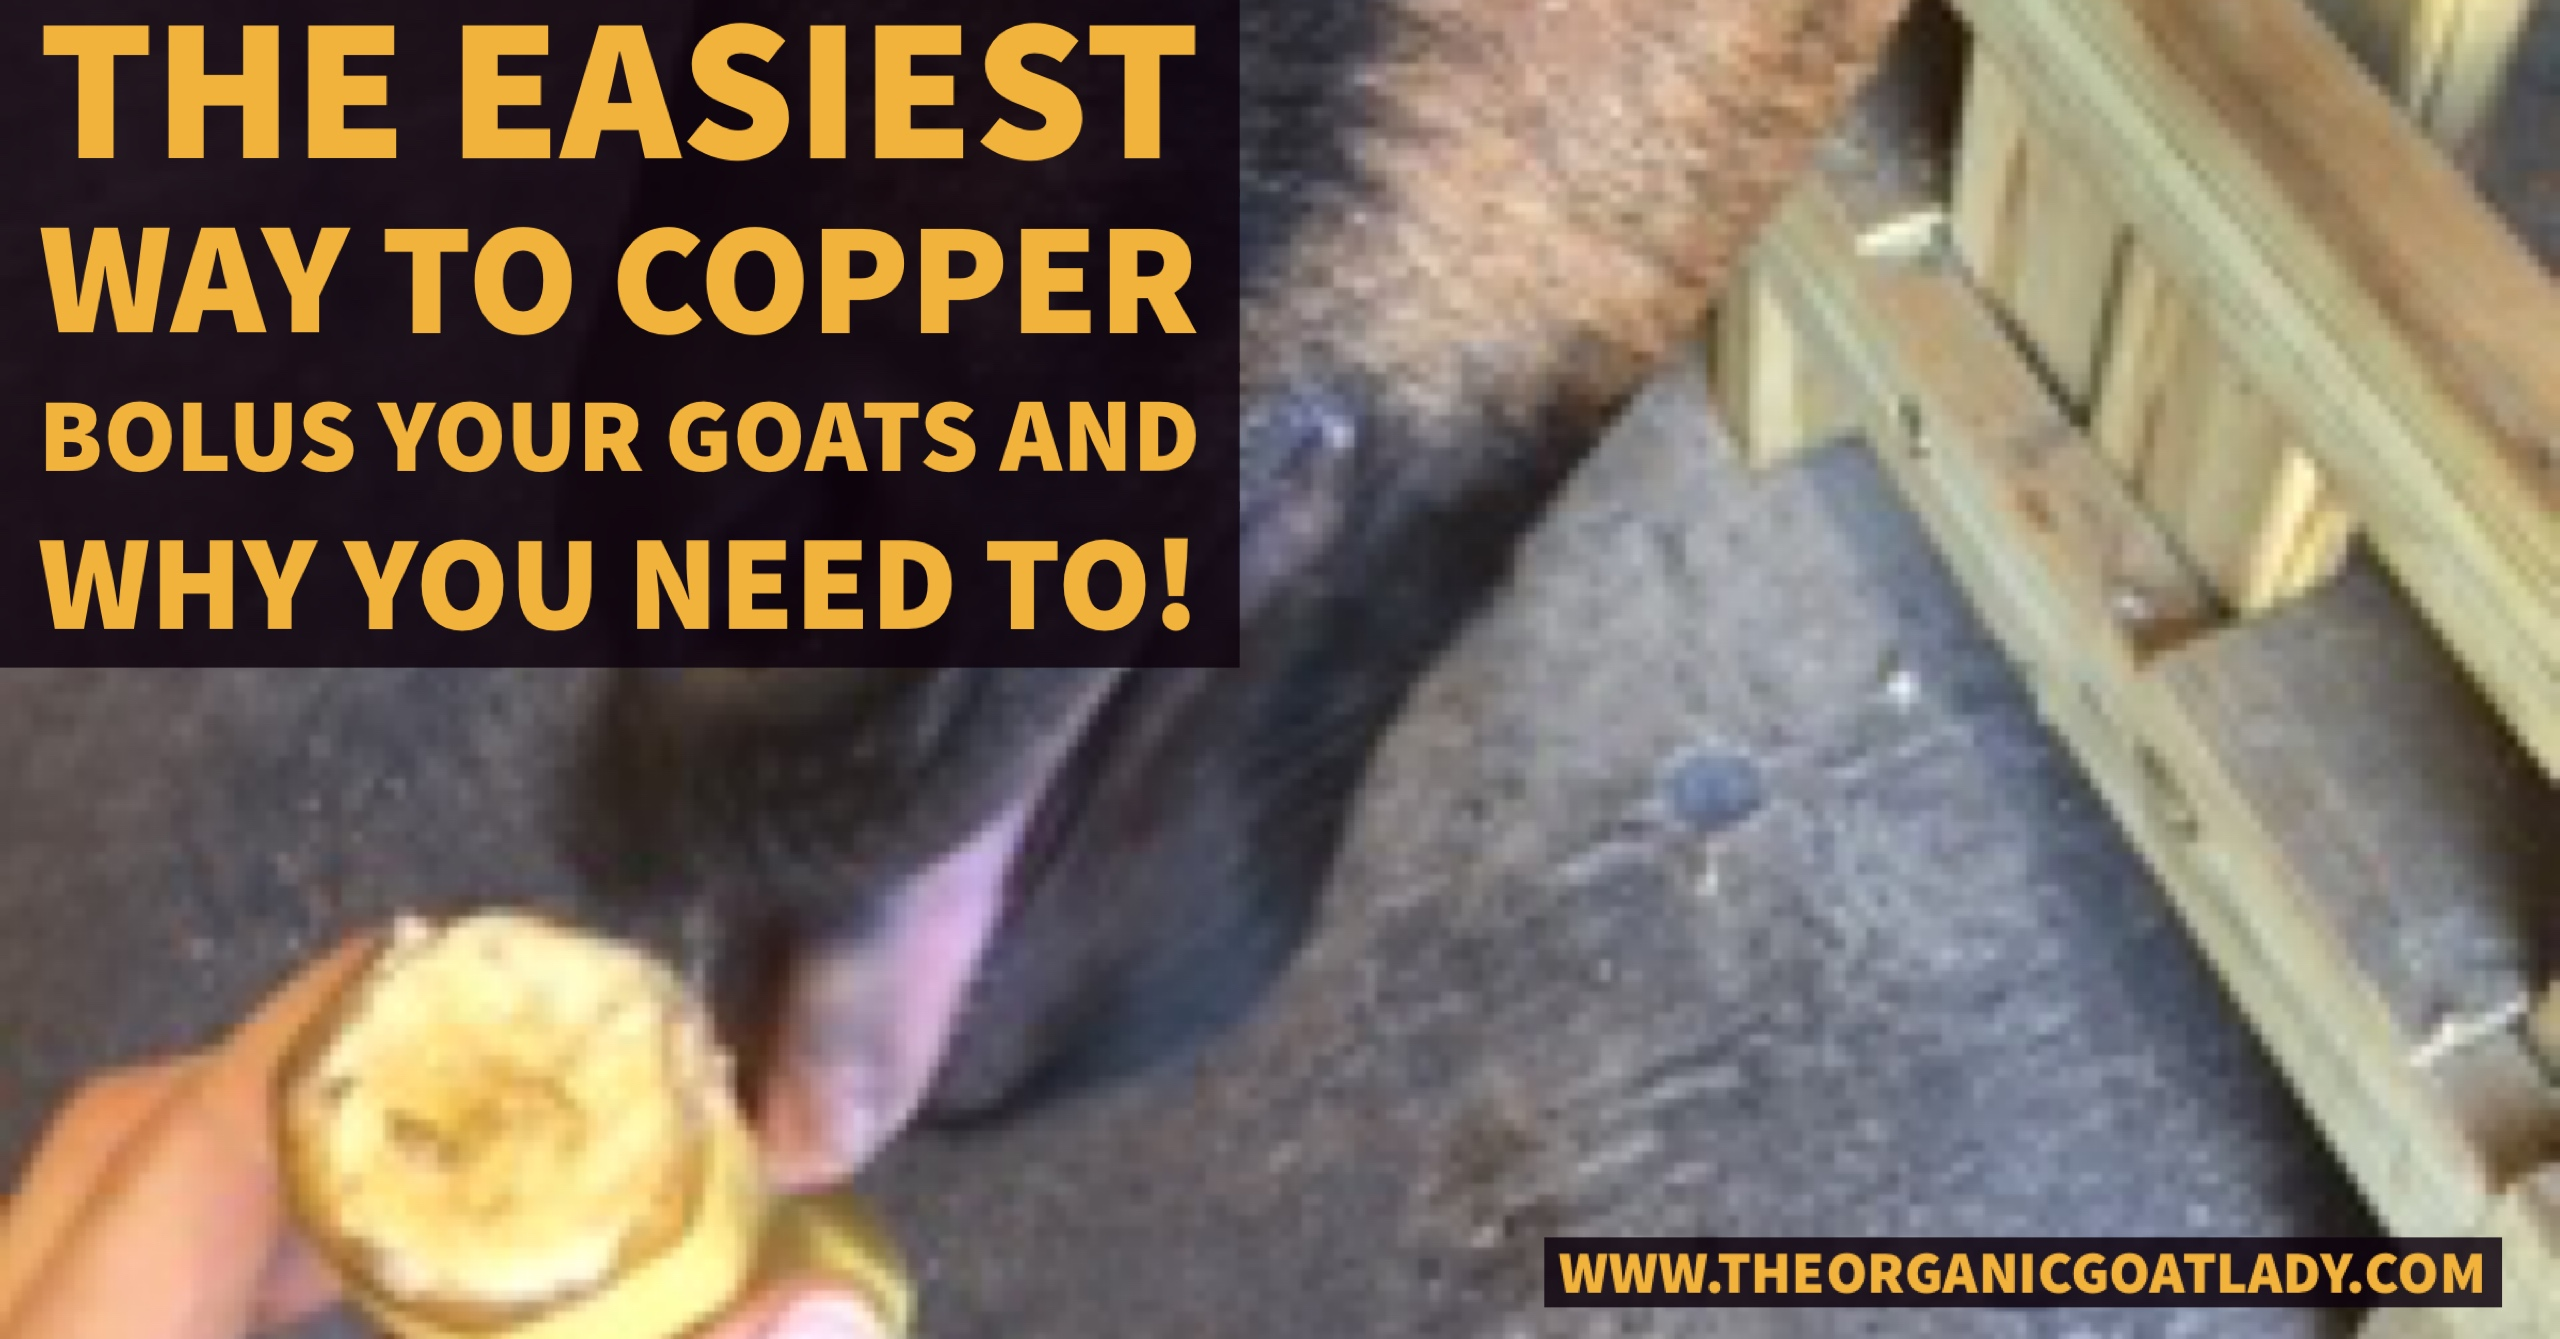 The Easiest Way To Copper Bolus Your Goats And Why You Need To